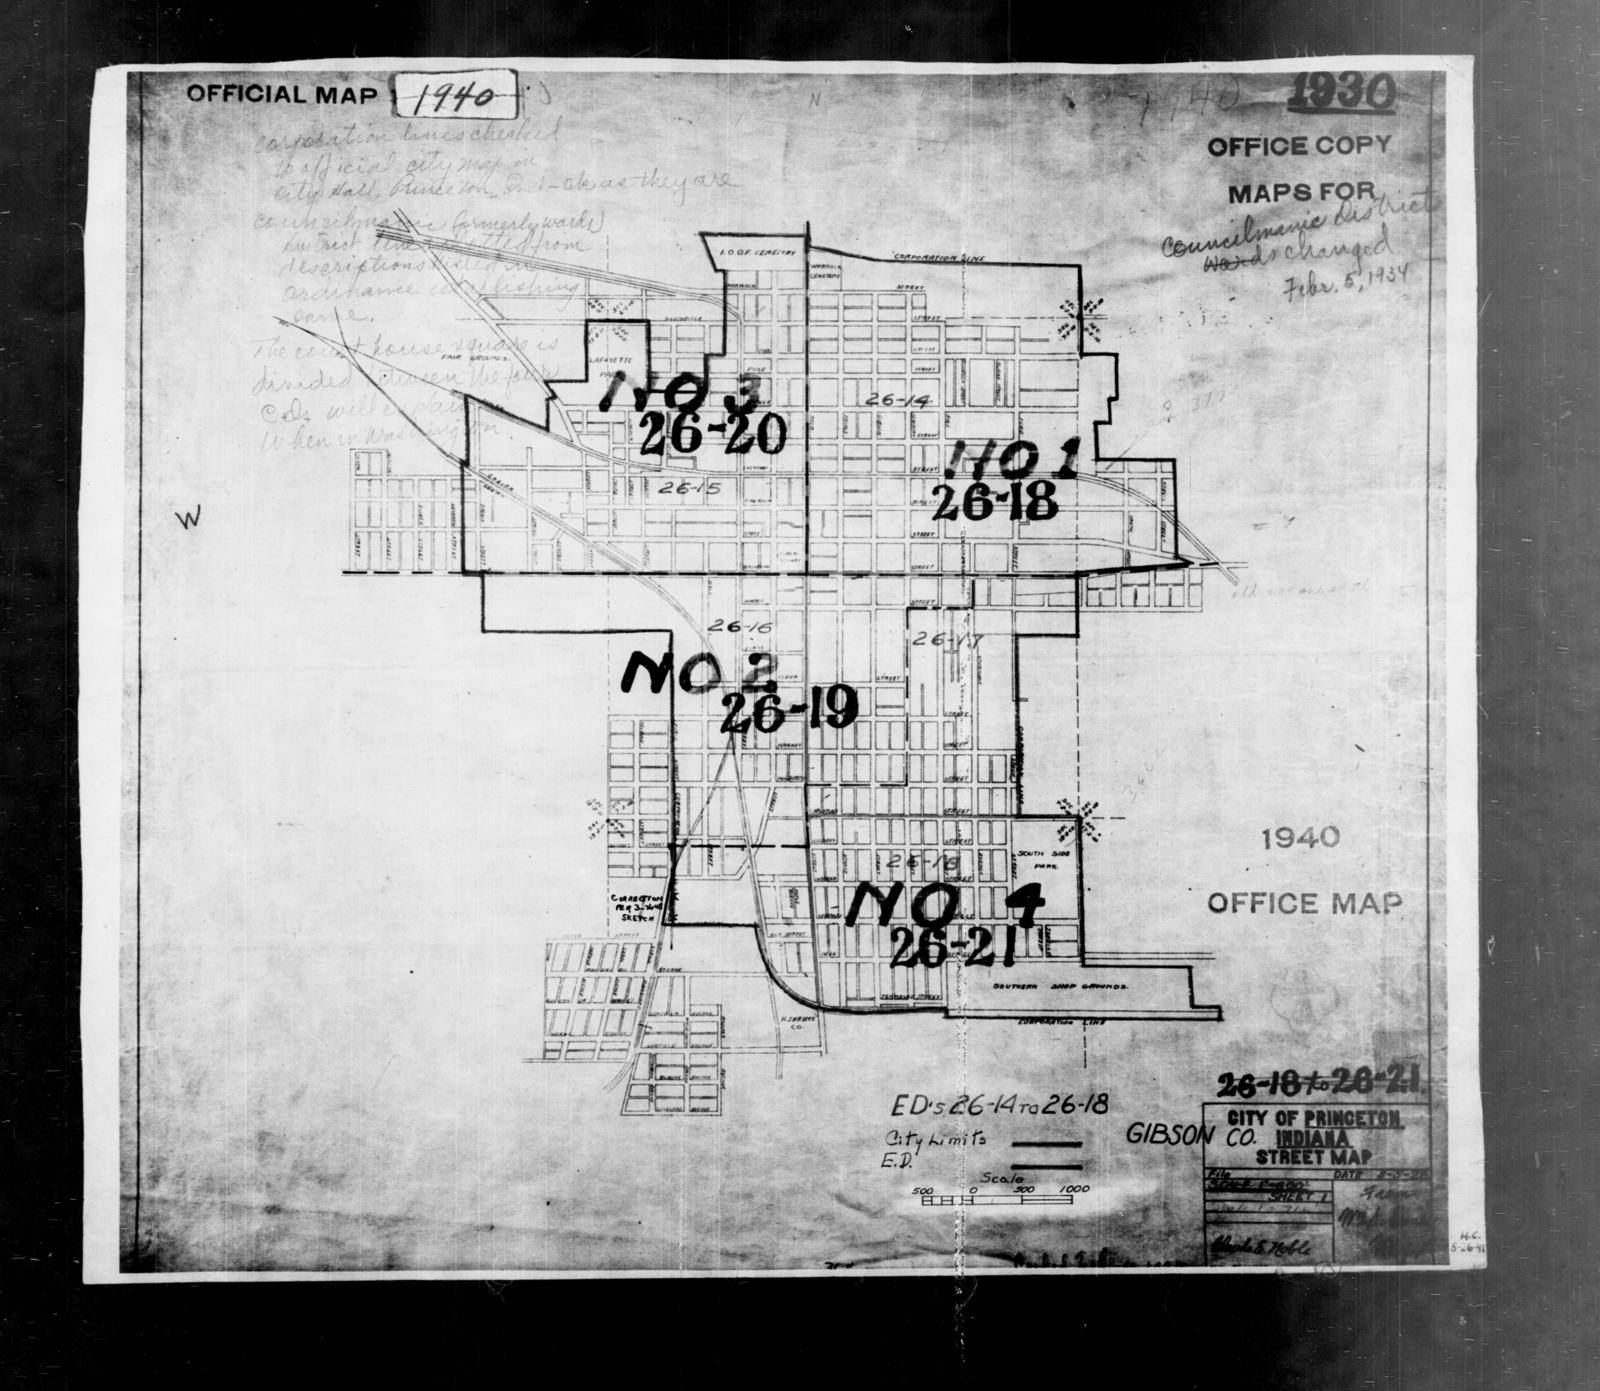 Gibson County Indiana Map.1940 Census Enumeration District Maps Indiana Gibson County